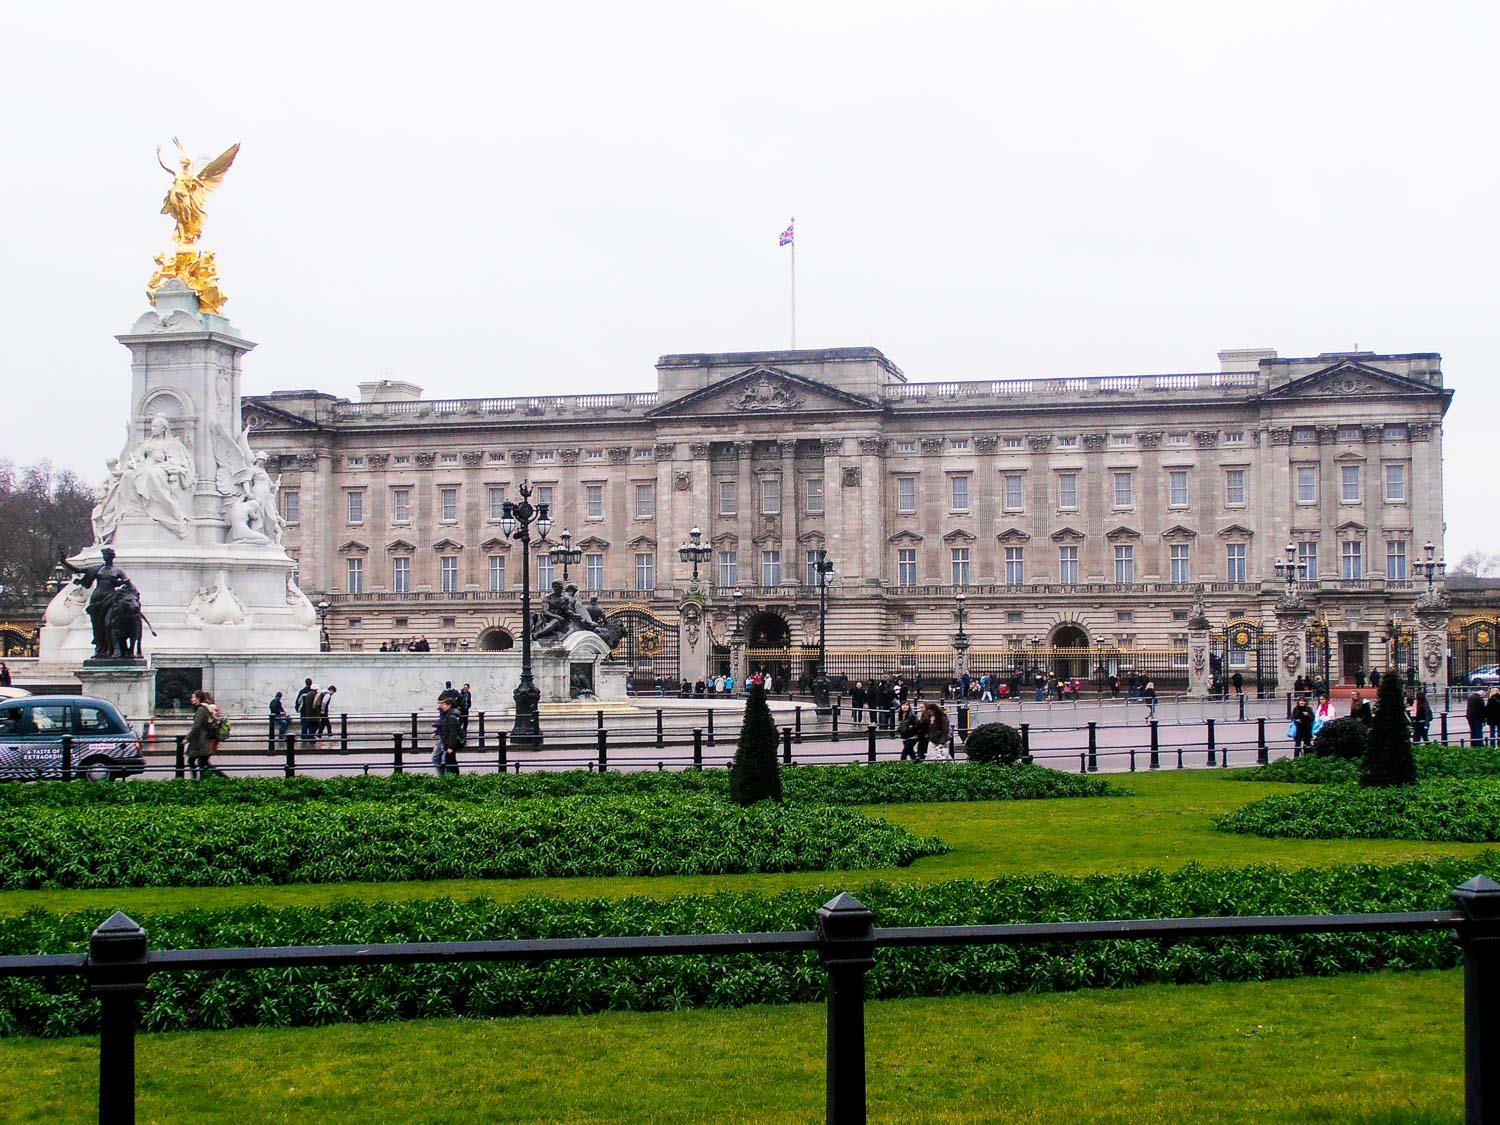 ba9d9241-8166-4060-b115-f158916c9af6-129052d7-872f-41c4-b25a-ff62bcbd647f-tour_photos-Buckingham-Palace-copy.jpg